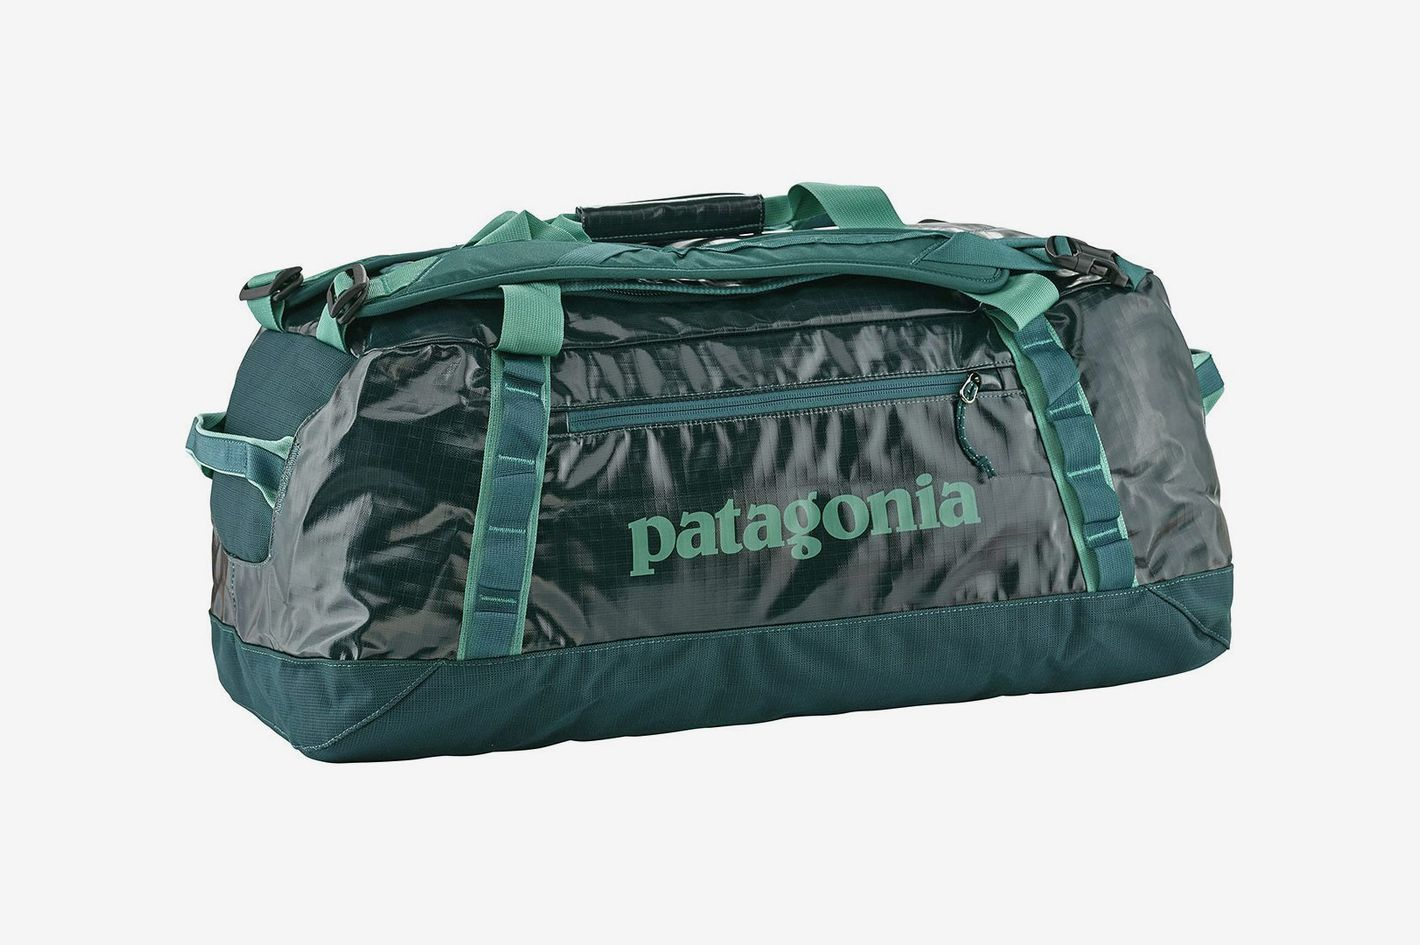 fdb627c81c4 The 13 Best Duffel Bags for Travel 2018